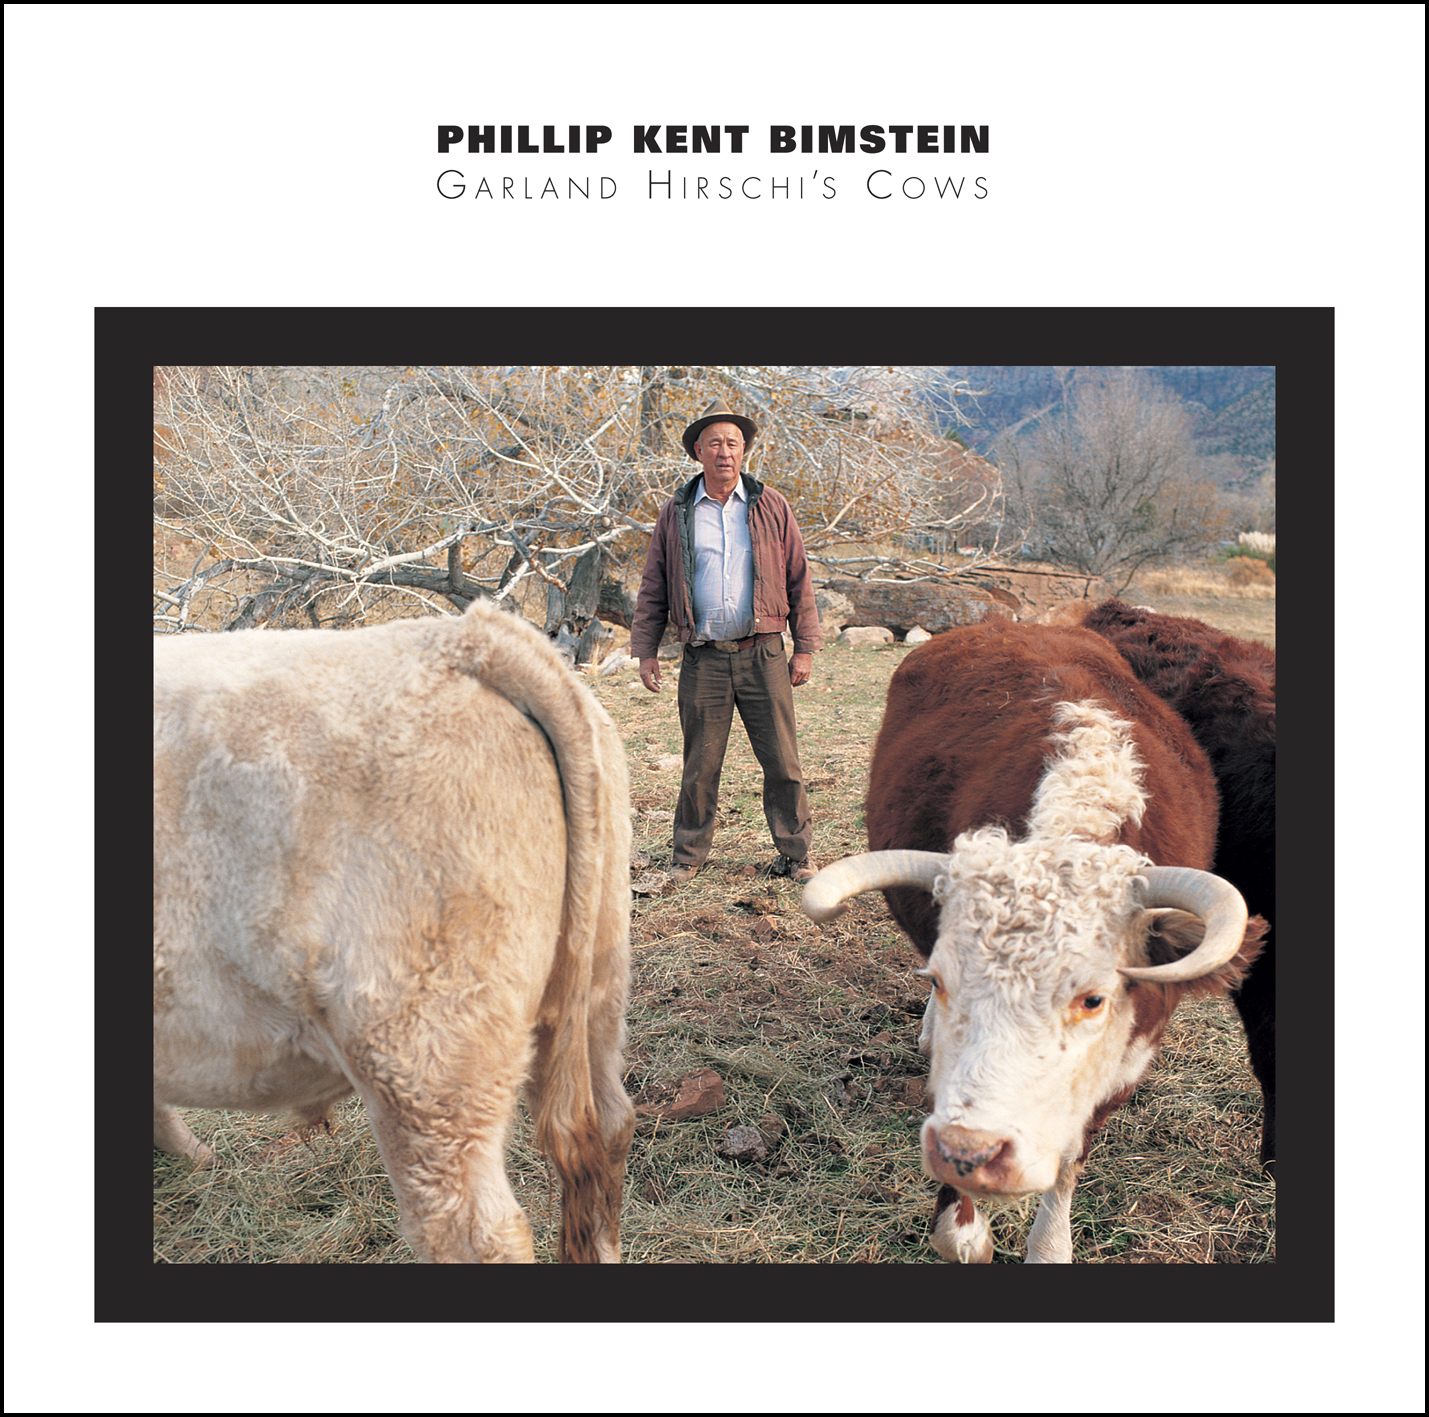 The cover for Philip Bimstein's Starkland CD Garland Hirschi's Cows which is a photo of a farmer with a pair of cows.